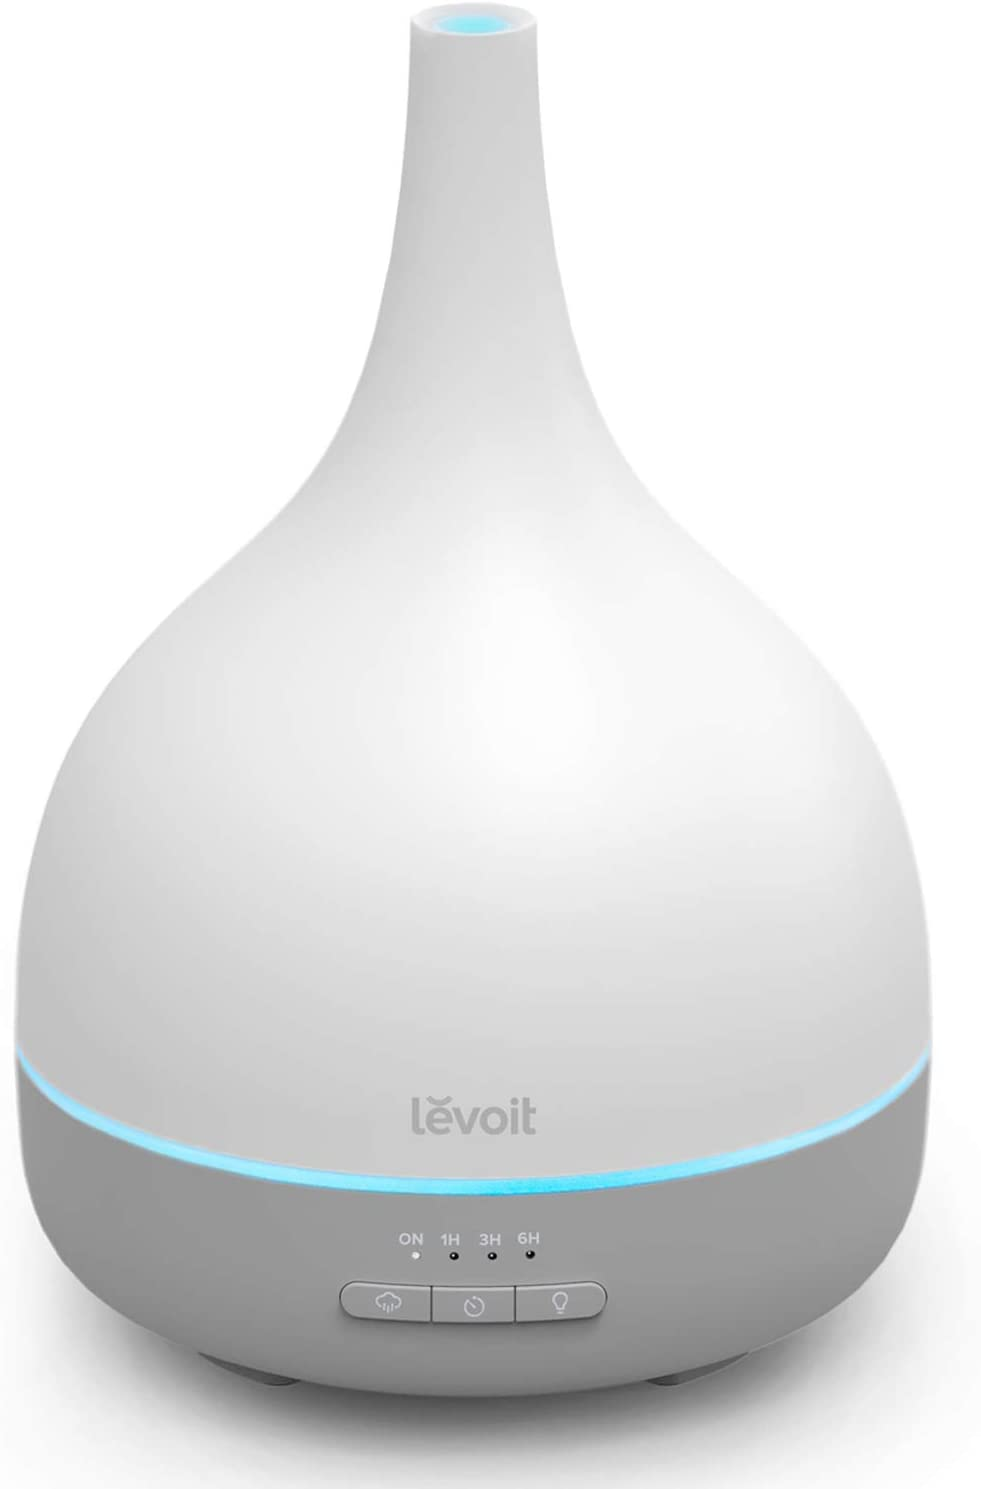 LEVOIT Essential Oil Diffuser, Aromatherapy Diffuser for Essential Oils, Cool Mist Humidifier,300ml Aroma Diffuser with 7 Color Lights & Timer, Auto Shut-off, BPA Free for Home Office Bedroom